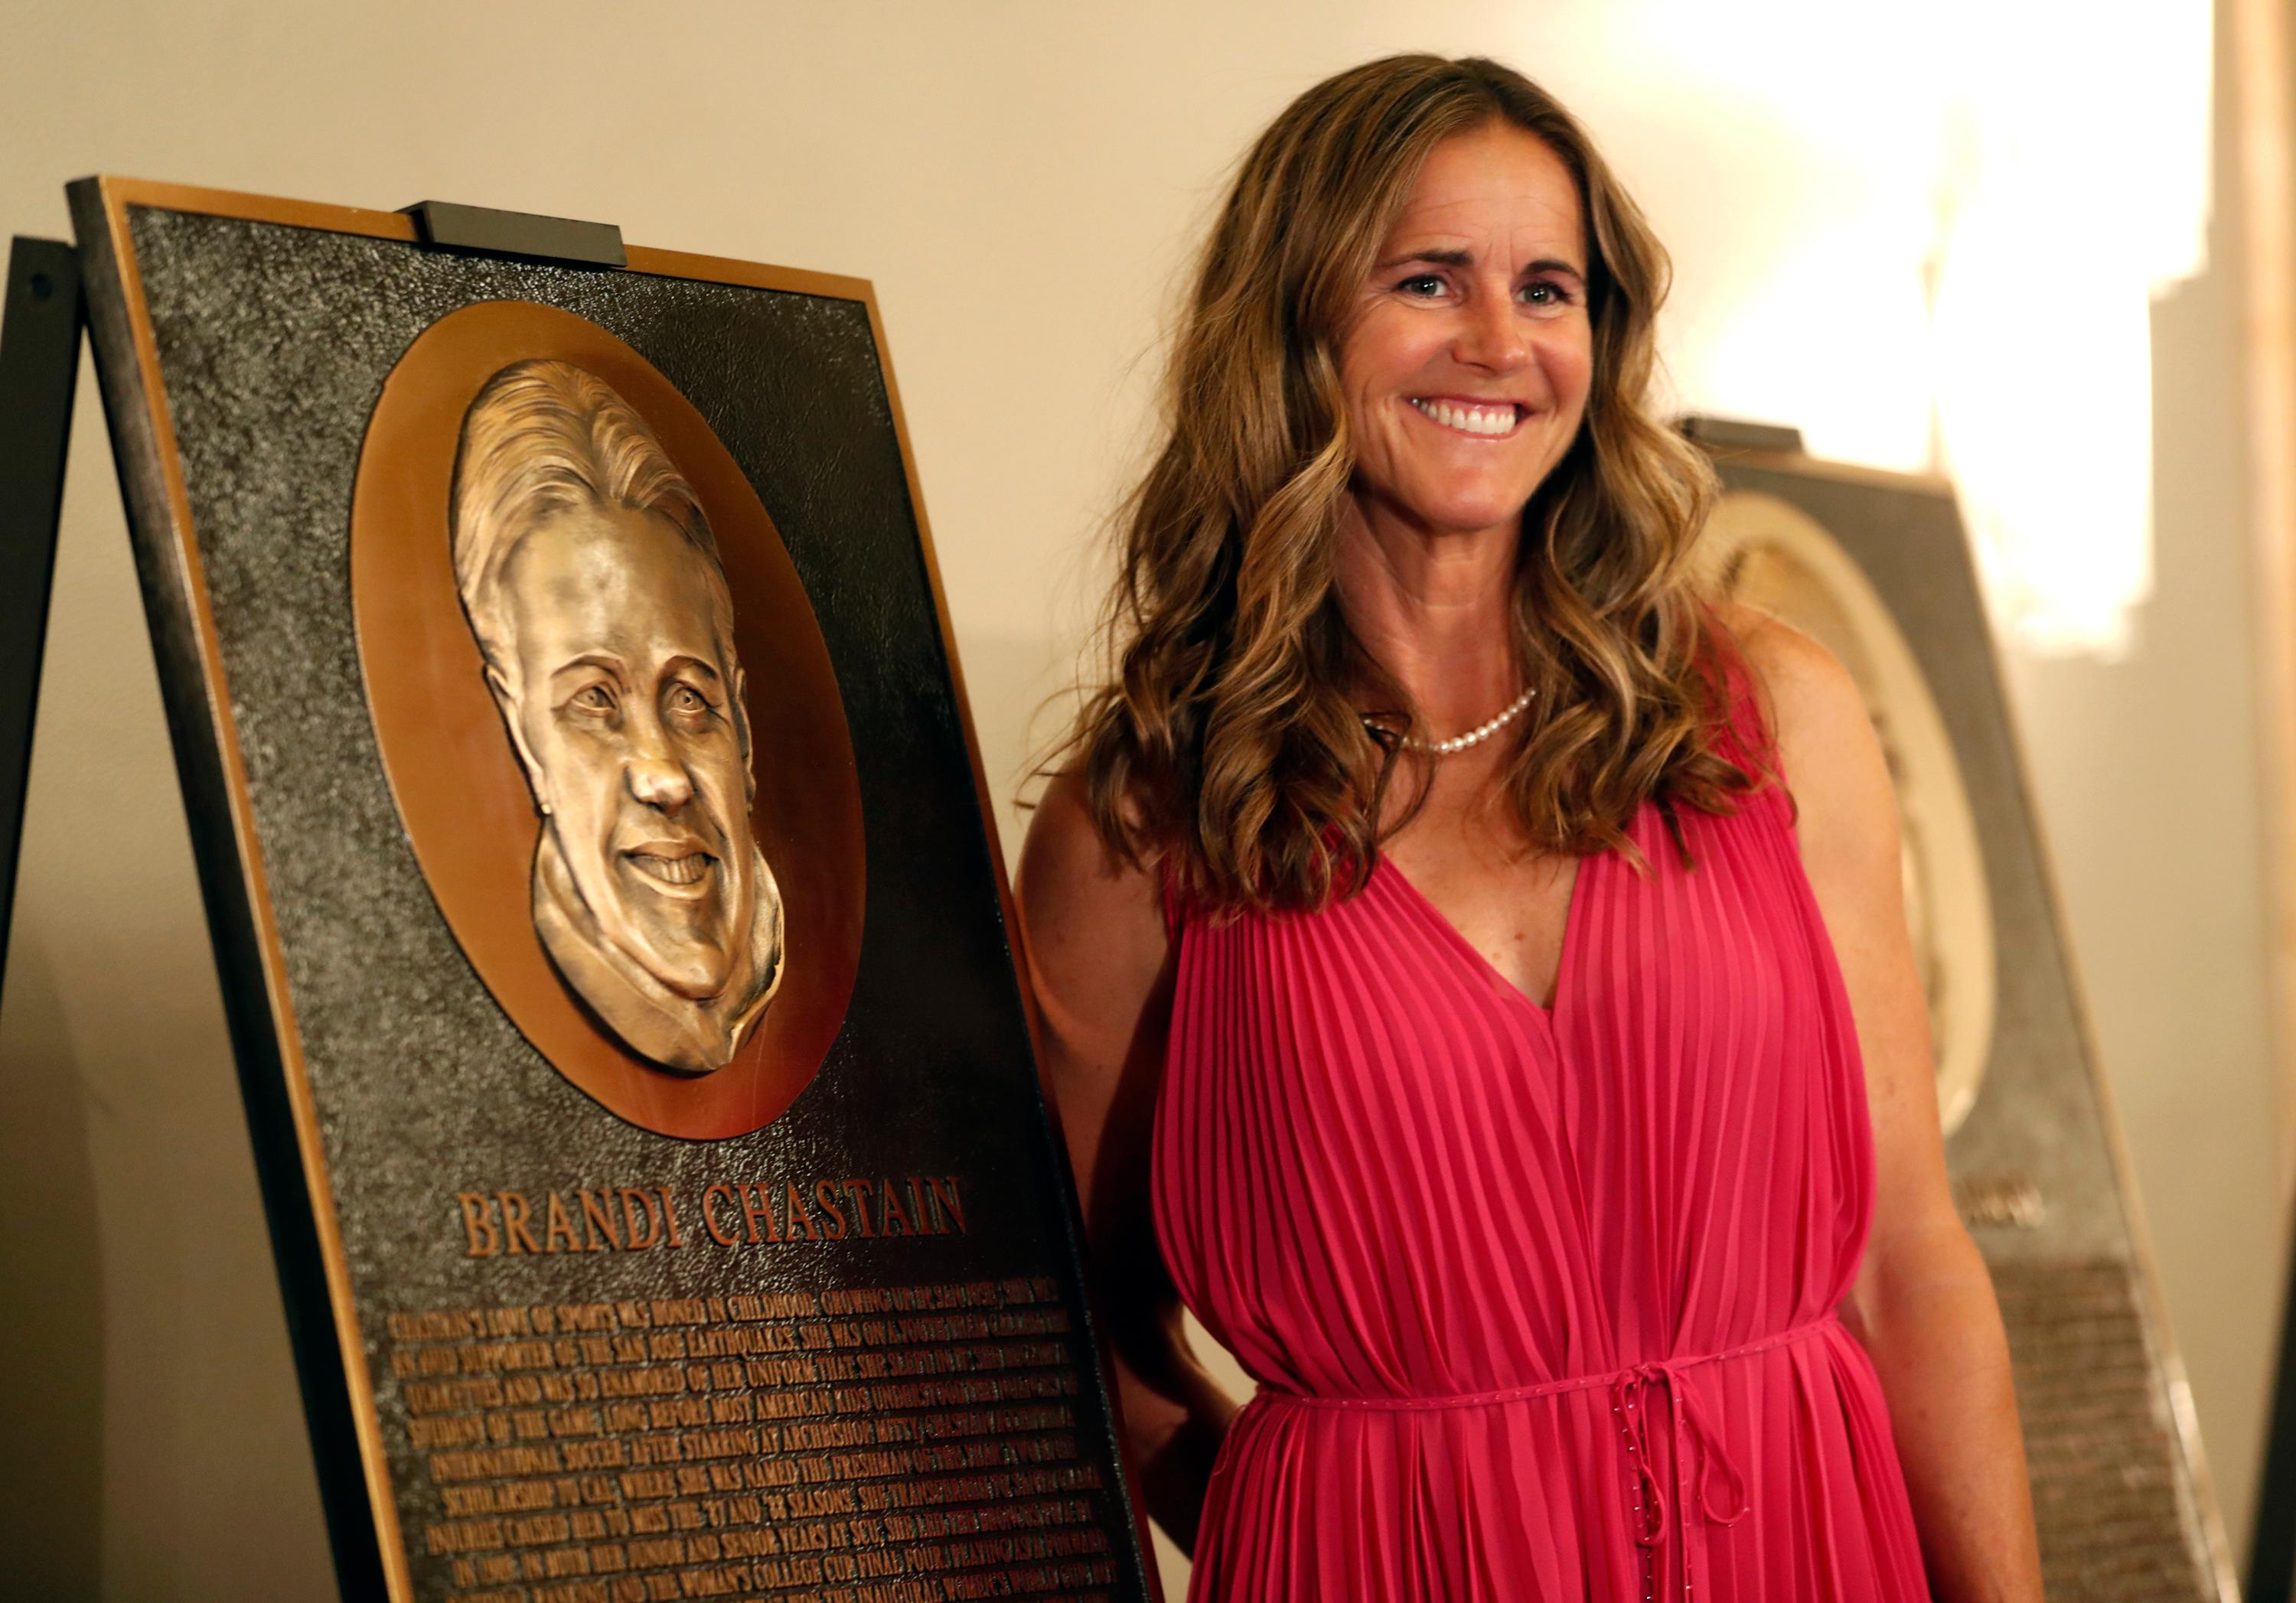 "In this photo taken Monday May 21, 2018, Bay Area Sports Hall of Hame inductee Brandi Chastain poses by her plaque during a press conference in San Francisco. Social media is finding little to like about the likeness on a plaque honoring retired soccer champion Chastain. The Bay Area Sports Hall of Fame in San Francisco unveiled the plaque on Monday night. Chastain diplomatically said ""it's not the most flattering. But it's nice."" (Scott Strazzante/San Francisco Chronicle via AP)"